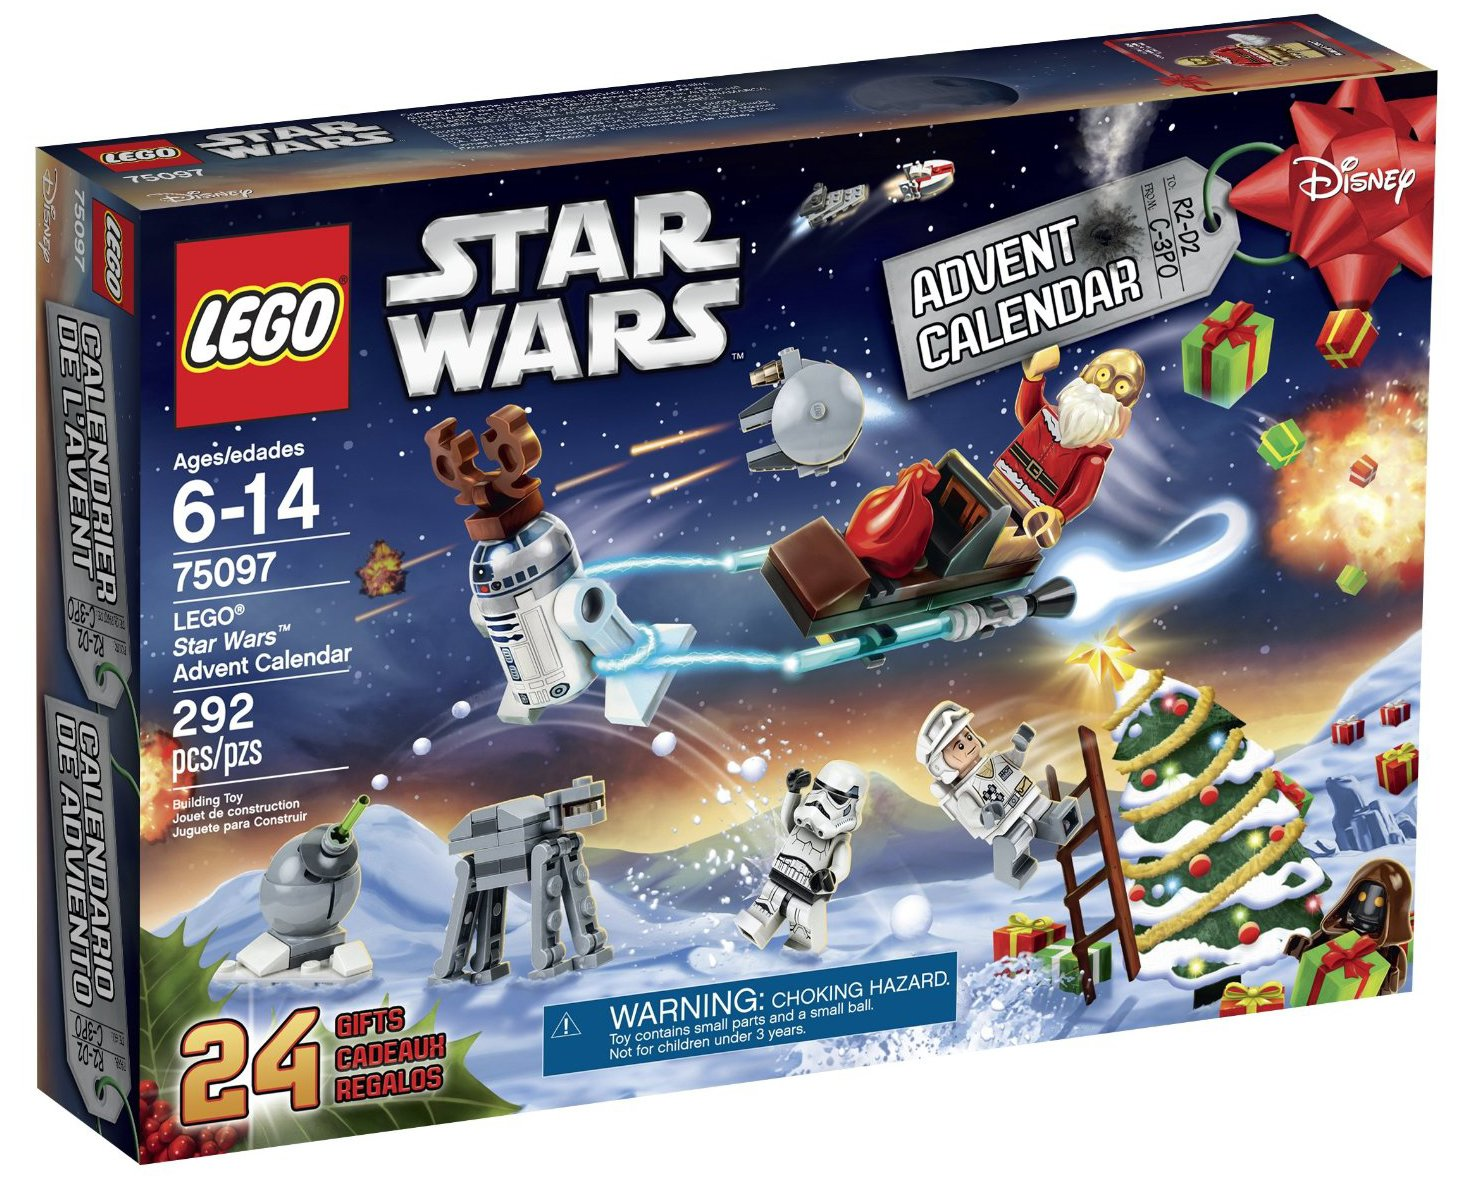 LEGO 2015 Advent Calendars Up for Order Early! - Bricks and Bloks